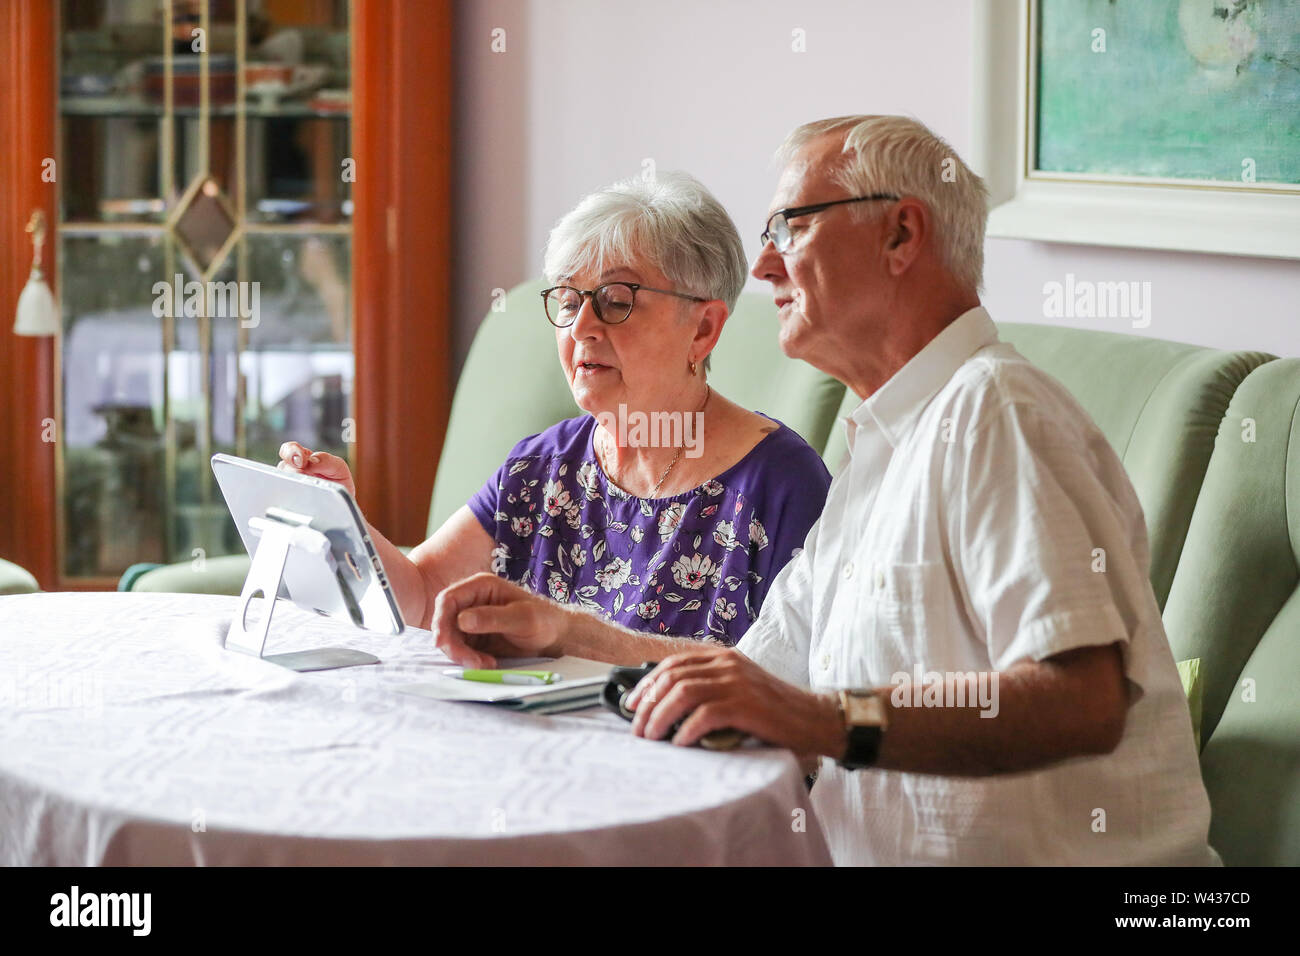 19 July 2019, Saxony-Anhalt, Halle (Saale): The pensioners Siglinde and Norbert Neumann use a tablet for communication with their family doctor. From the point of view of a housing cooperative in Halle, telemedicine could be a great help, especially for older people. In a project in 20 apartments, 94 percent of the test persons rated the digital doctor's interview as very good or good. For the 'Haendel II' project, 20 apartments were equipped with the appropriate technology. Subjects were able to reach a doctor via tablet. In addition, the apartments were equipped with sensors to detect critic - Stock Image